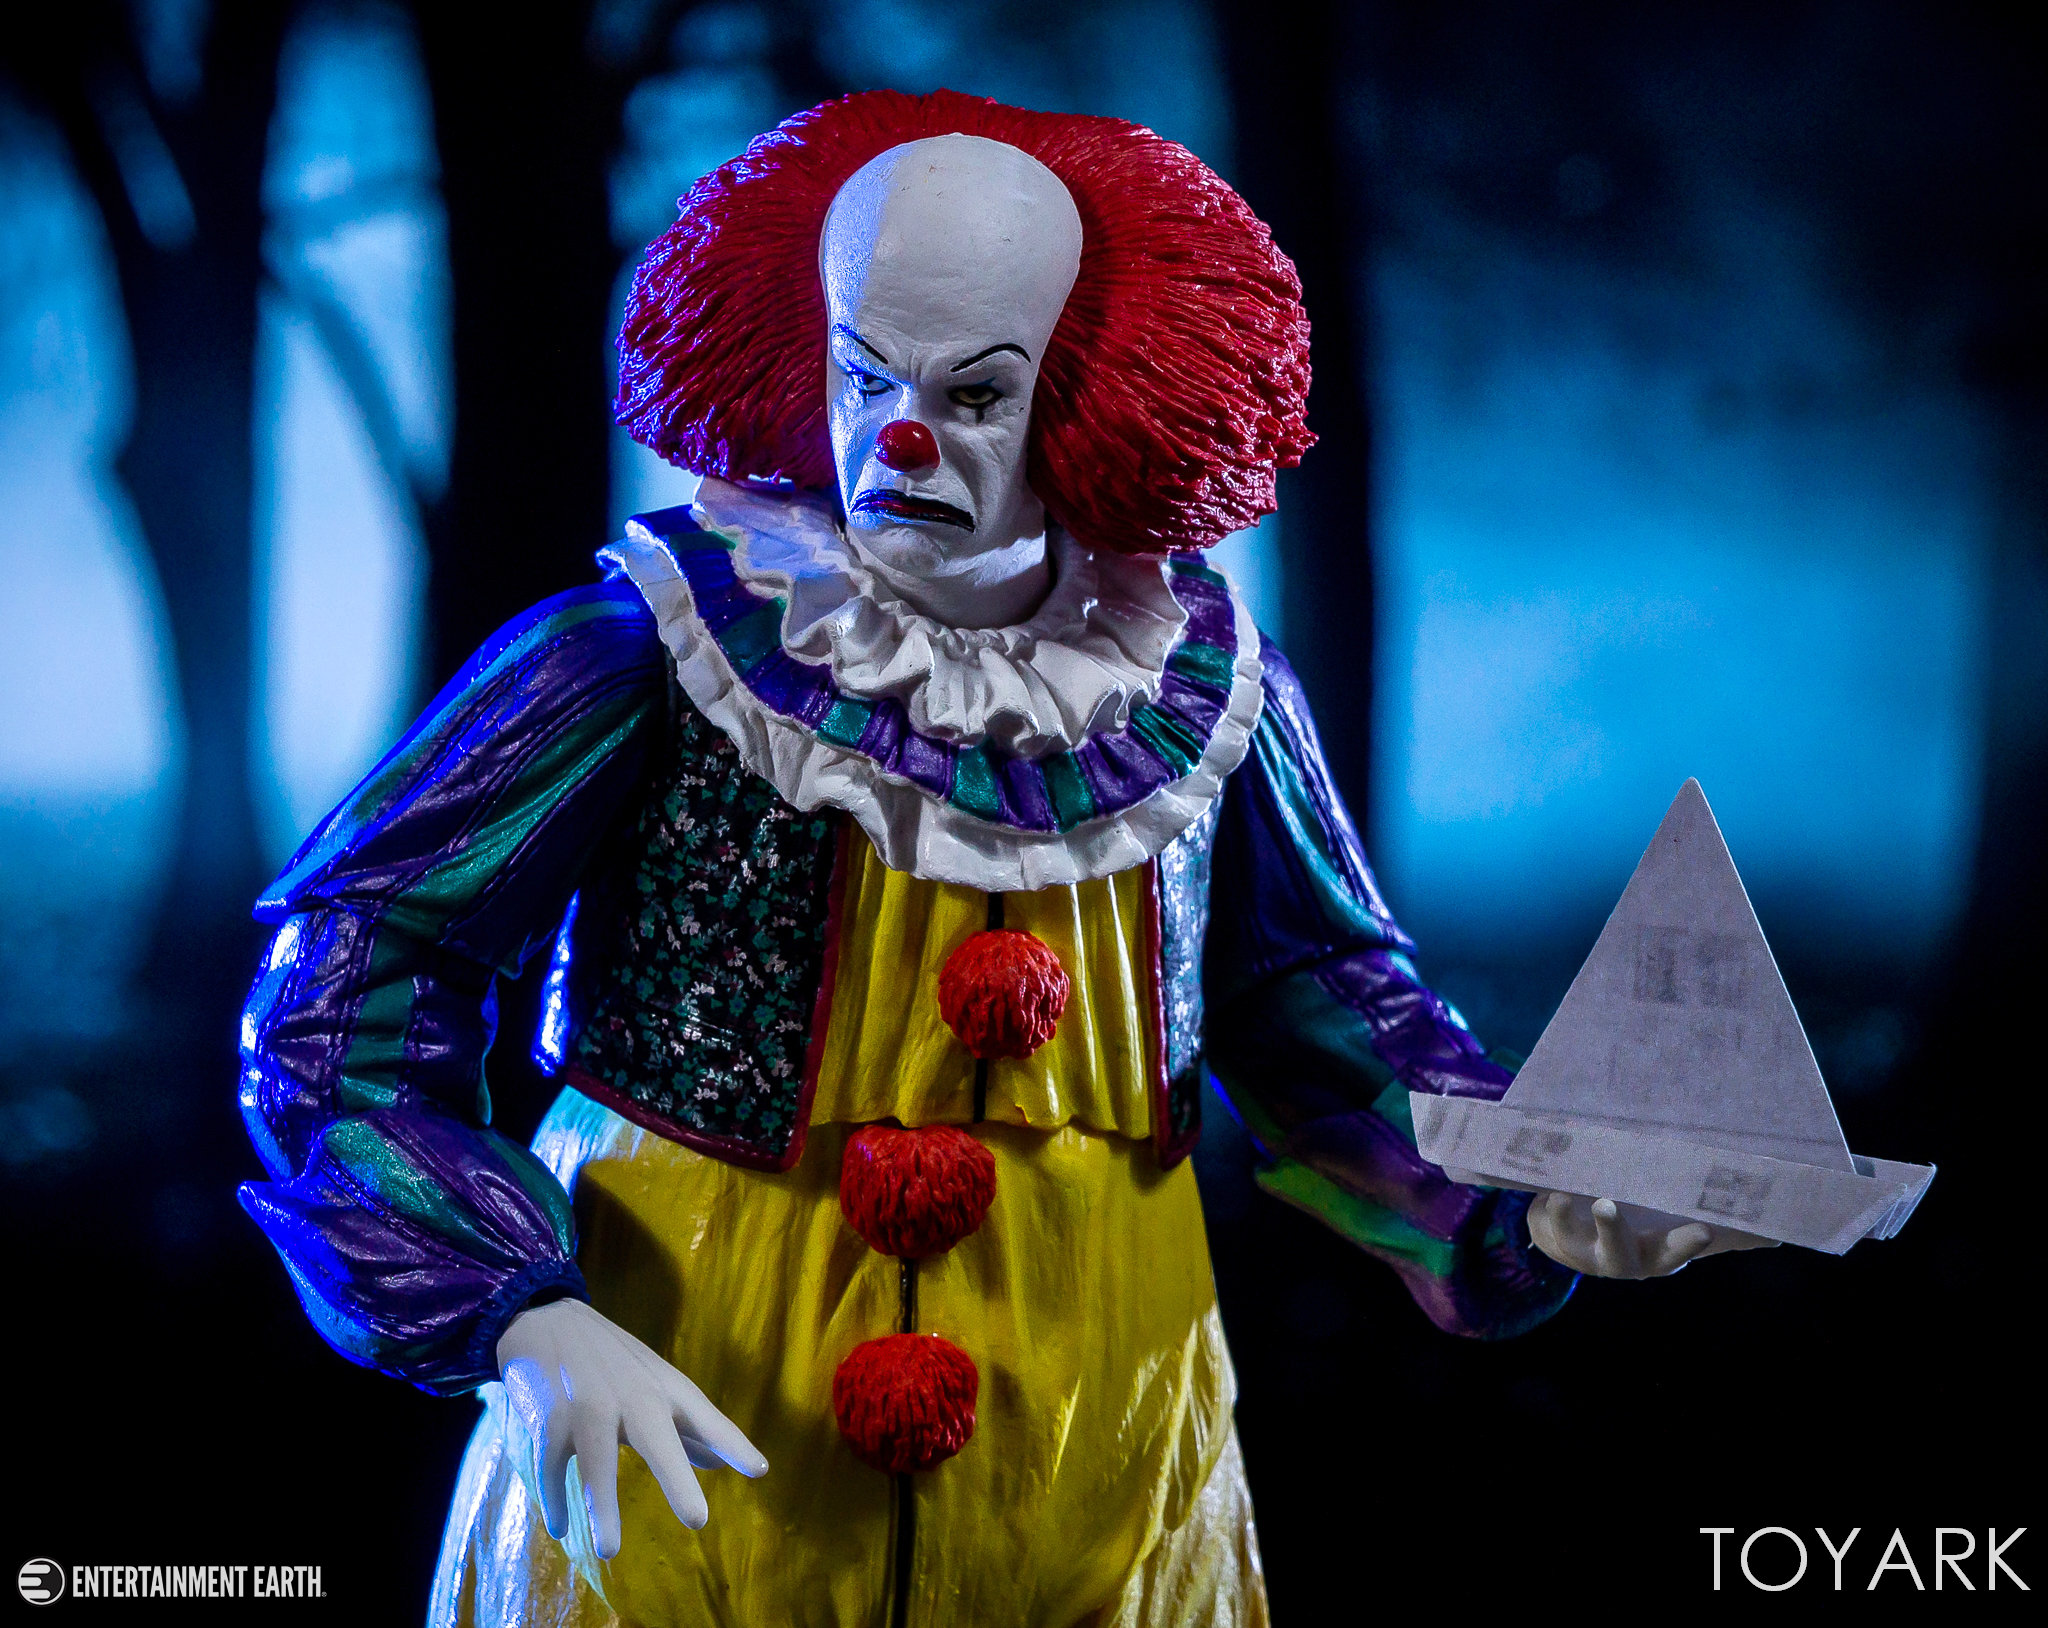 https://news.toyark.com/wp-content/uploads/sites/4/2018/10/NECA-1990-Pennywise-049.jpg